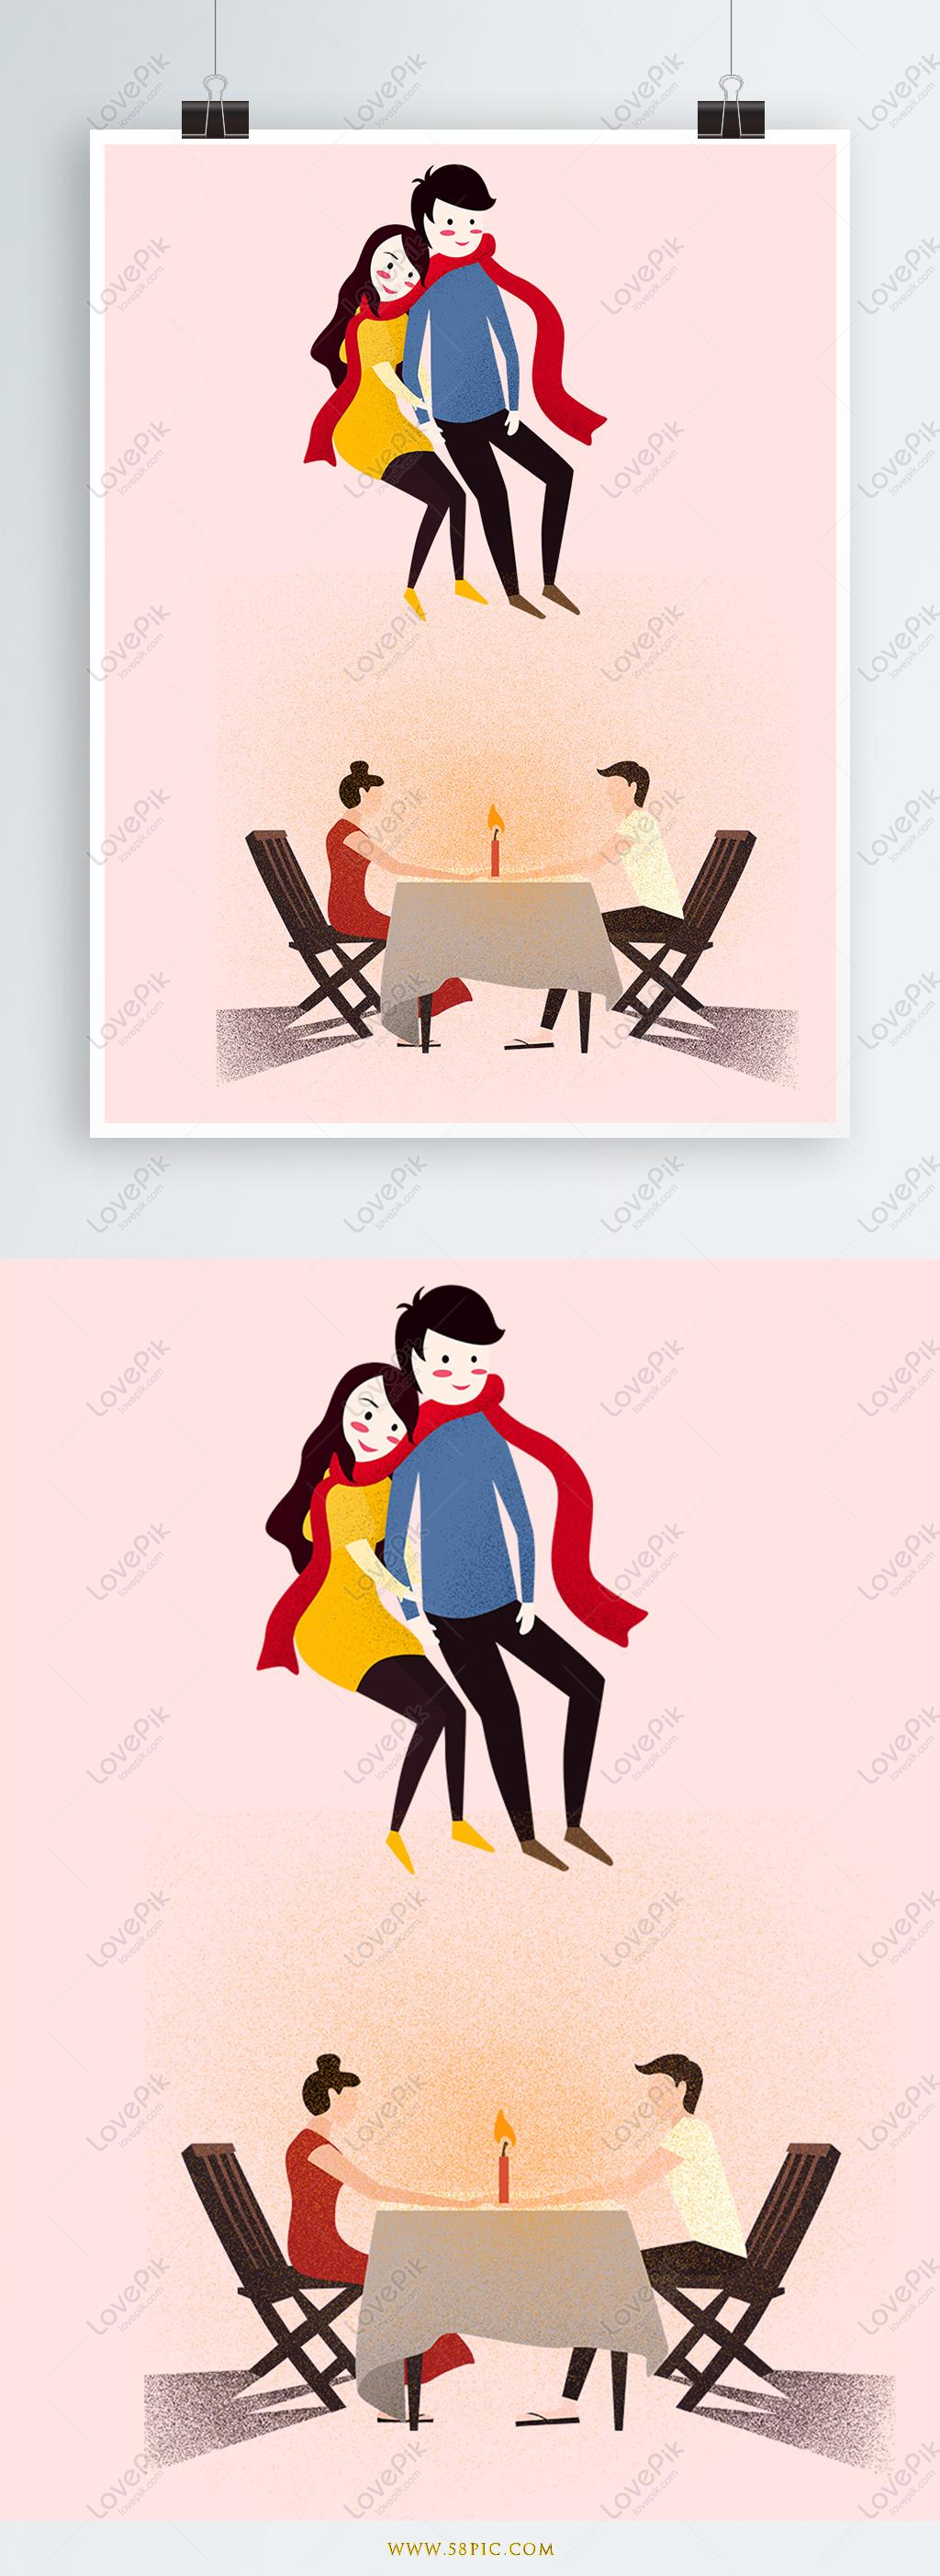 Rooftop Romantic Candlelight Dinner Couple Proposal Confession I Illustration Image Picture Free Download 630021052 Lovepik Com